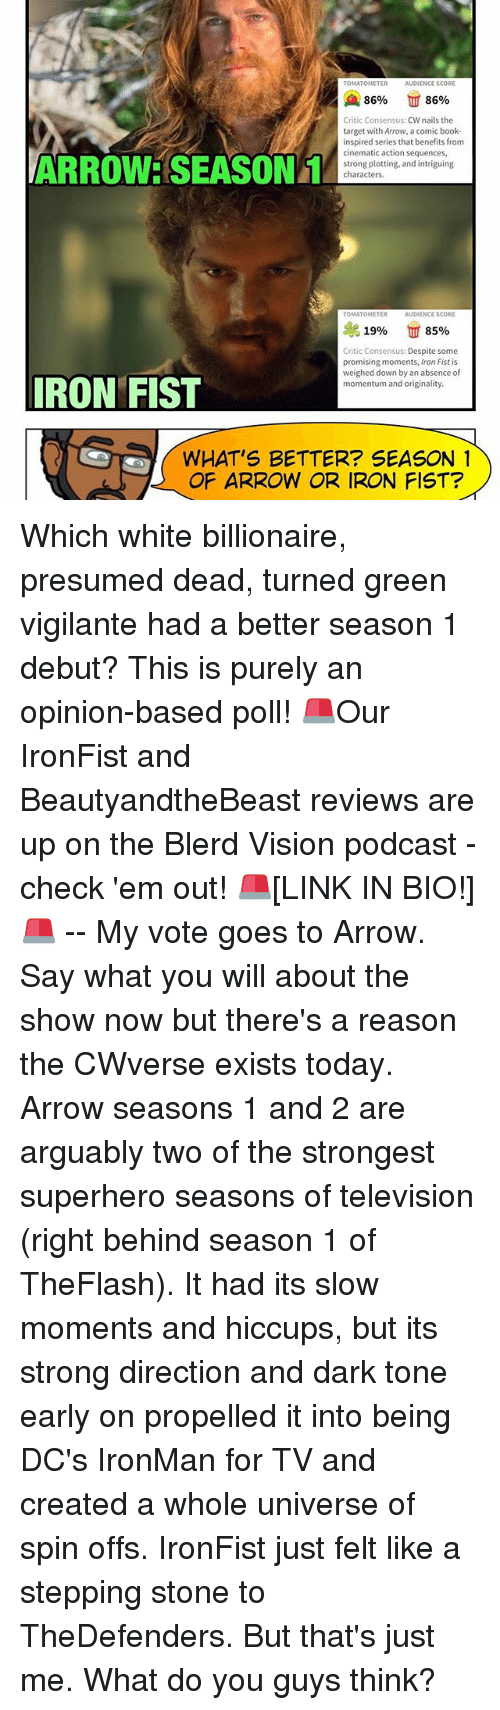 Memes, 🤖, and Ironman: TOMATOMETER  AUDIENCE SCORE  A 86%  86%  Critic Consensus  CW nails the  target with Arrow, a comic book  inspired series that benefits from  cinematic action sequences,  ARROWE SEASON 1  strong plotting, and intriguing  characters.  TOMATOMETER  AUDIENCE SCORE  19%  85%  Critic Consensus: Despite some  promising moments, Iron Fist is  weighed down by an absence of  IRON FIST  momentum and originality.  WHAT'S BETTER? SEASON 1  OF ARROW OR IRON FIST? Which white billionaire, presumed dead, turned green vigilante had a better season 1 debut? This is purely an opinion-based poll! 🚨Our IronFist and BeautyandtheBeast reviews are up on the Blerd Vision podcast - check 'em out! 🚨[LINK IN BIO!] 🚨 -- My vote goes to Arrow. Say what you will about the show now but there's a reason the CWverse exists today. Arrow seasons 1 and 2 are arguably two of the strongest superhero seasons of television (right behind season 1 of TheFlash). It had its slow moments and hiccups, but its strong direction and dark tone early on propelled it into being DC's IronMan for TV and created a whole universe of spin offs. IronFist just felt like a stepping stone to TheDefenders. But that's just me. What do you guys think?